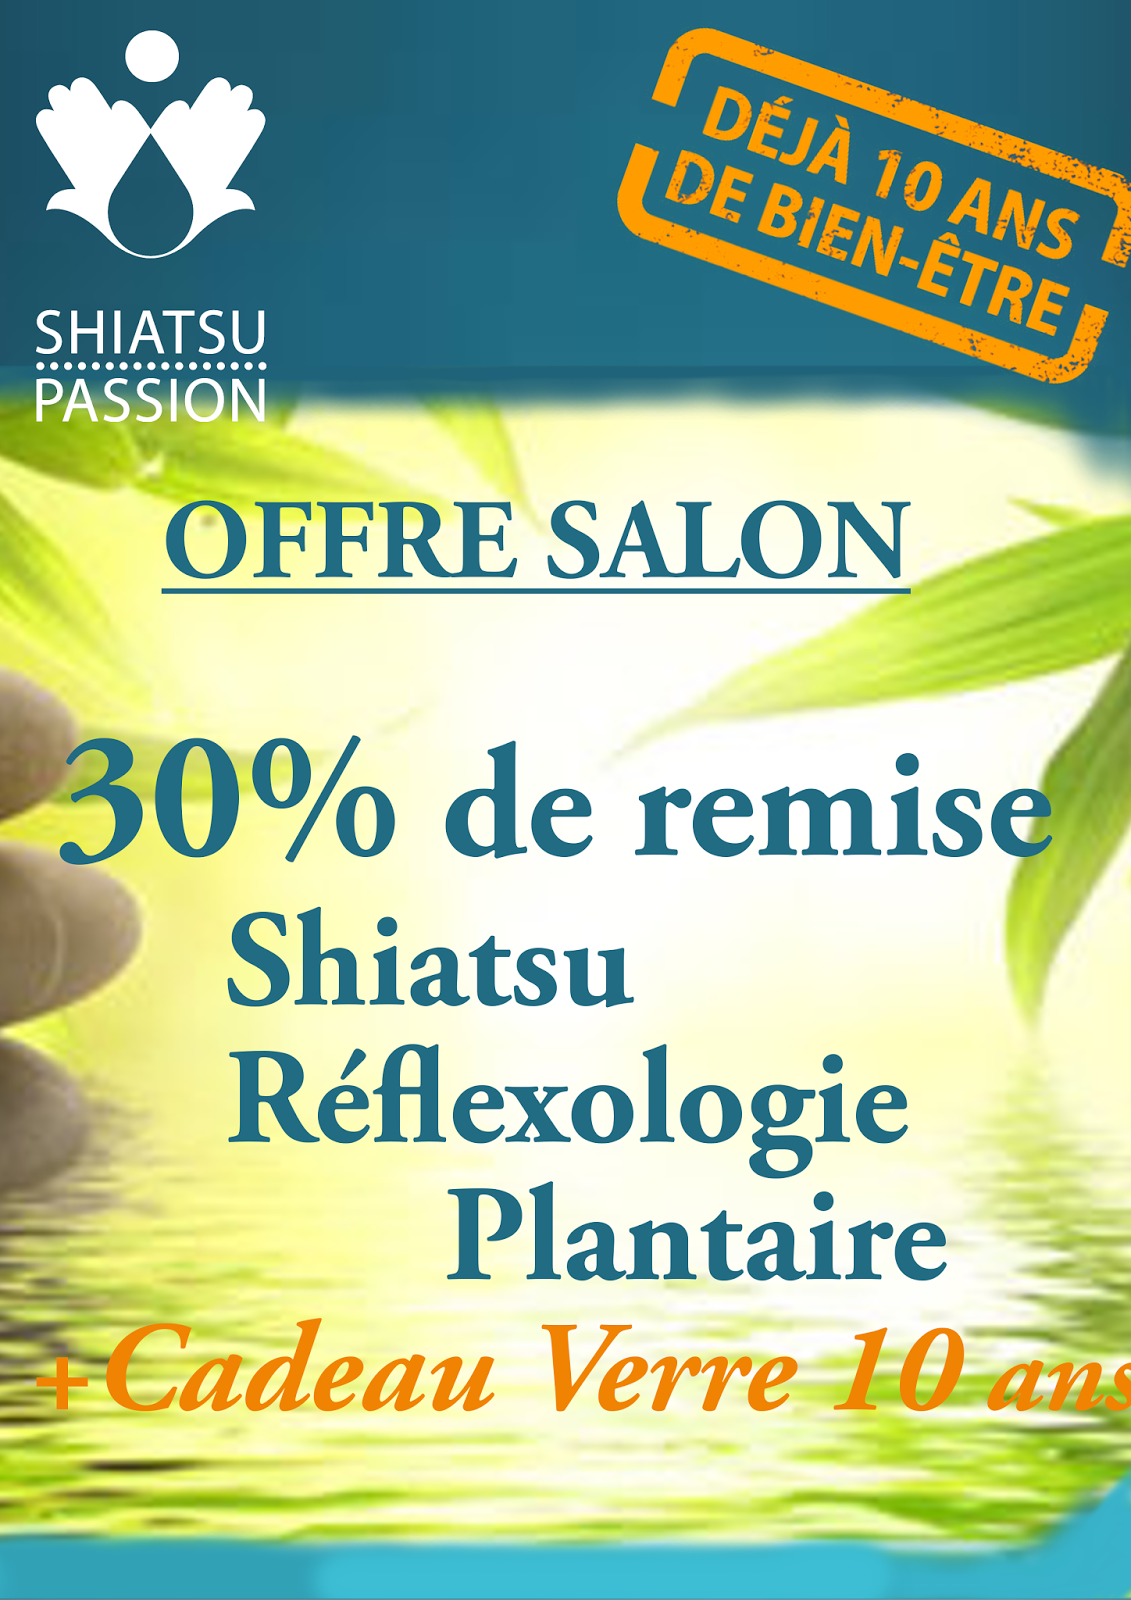 Shiatsu passion fran oise couteron salon natura 2017 for Salon du chiot reze 2017